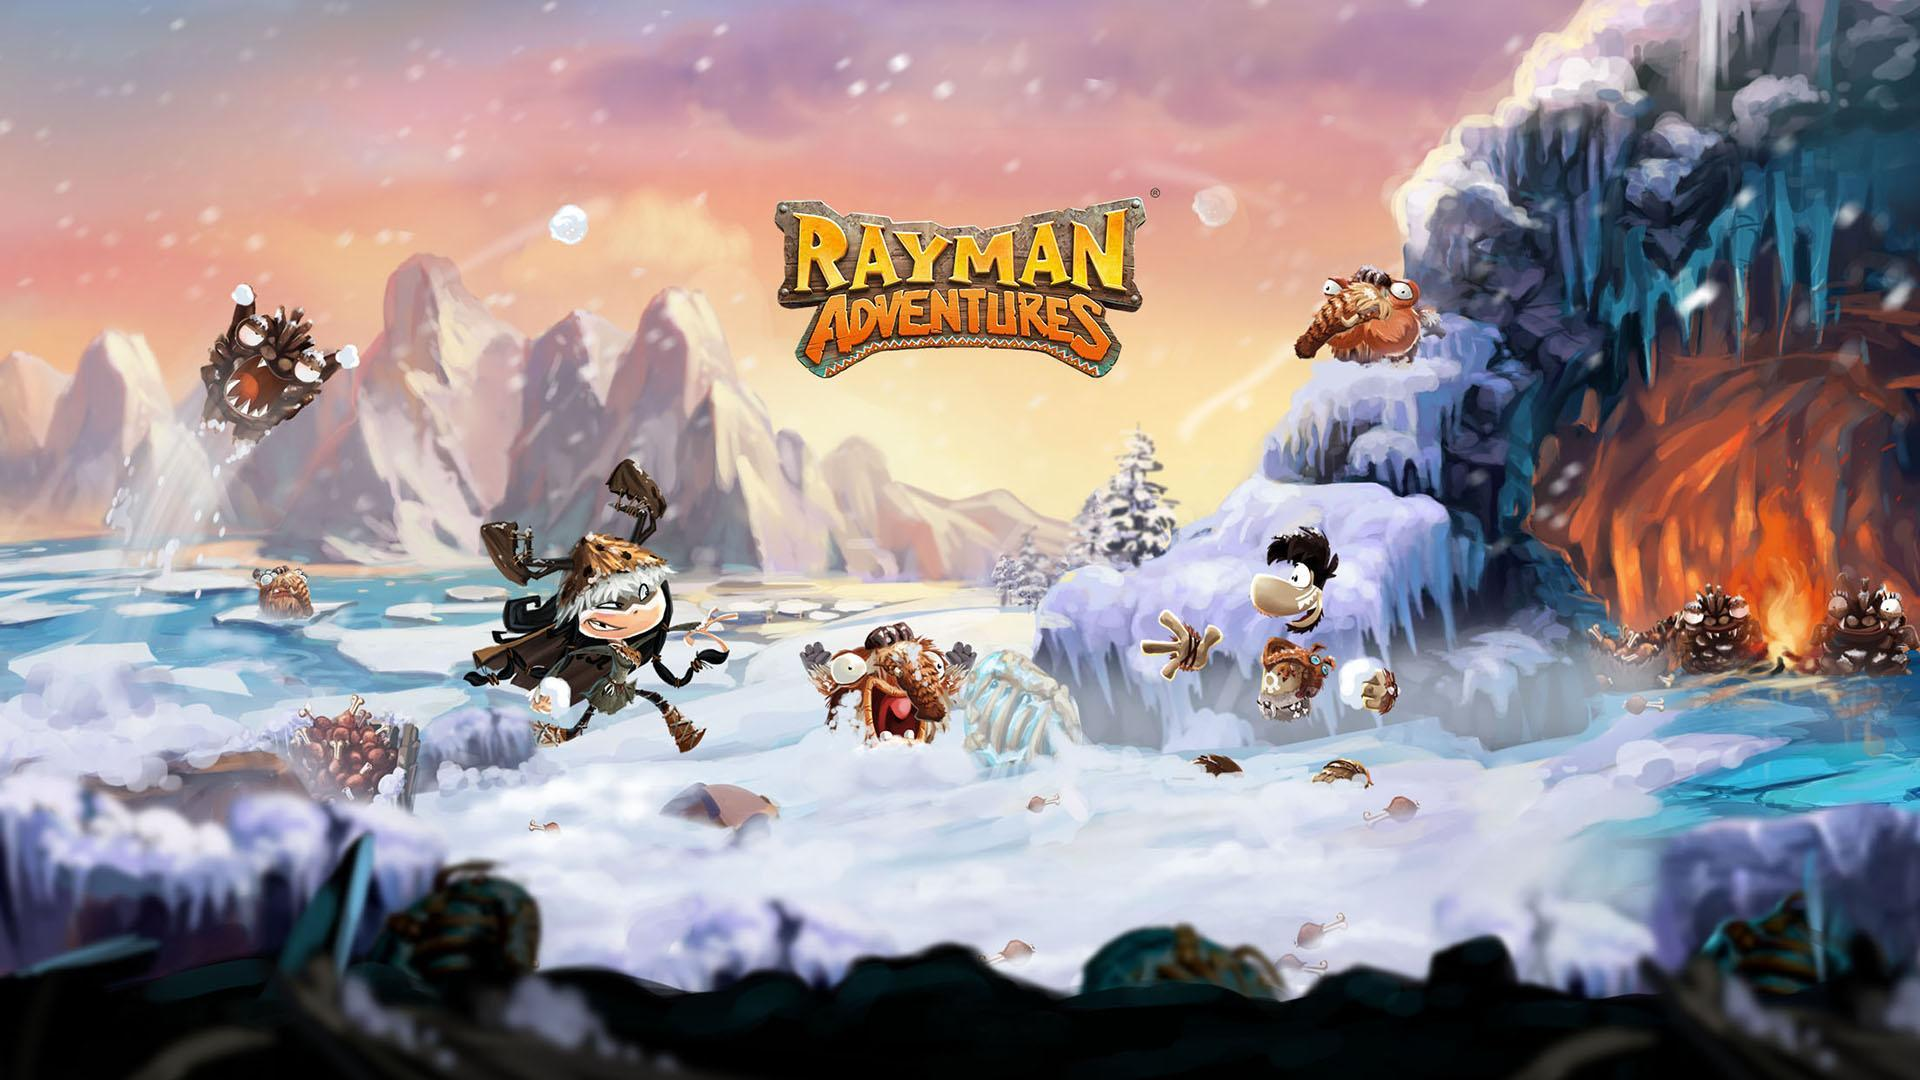 Rayman Adventures for Android - APK Download